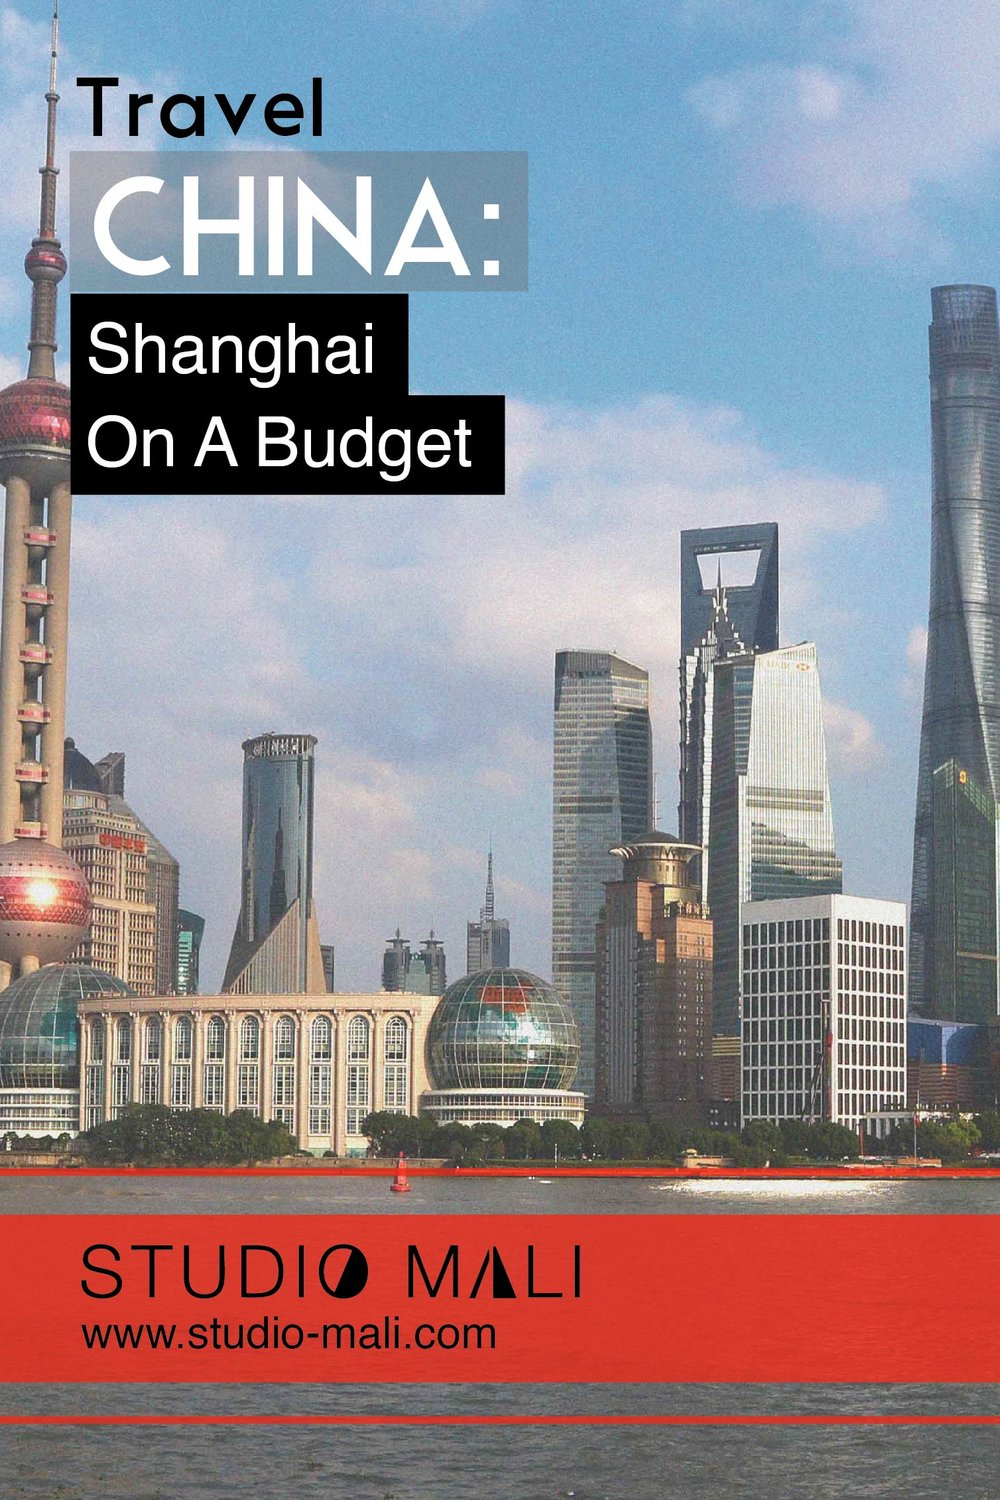 China - Shanghai On A Budget, by Studio Mali.jpg